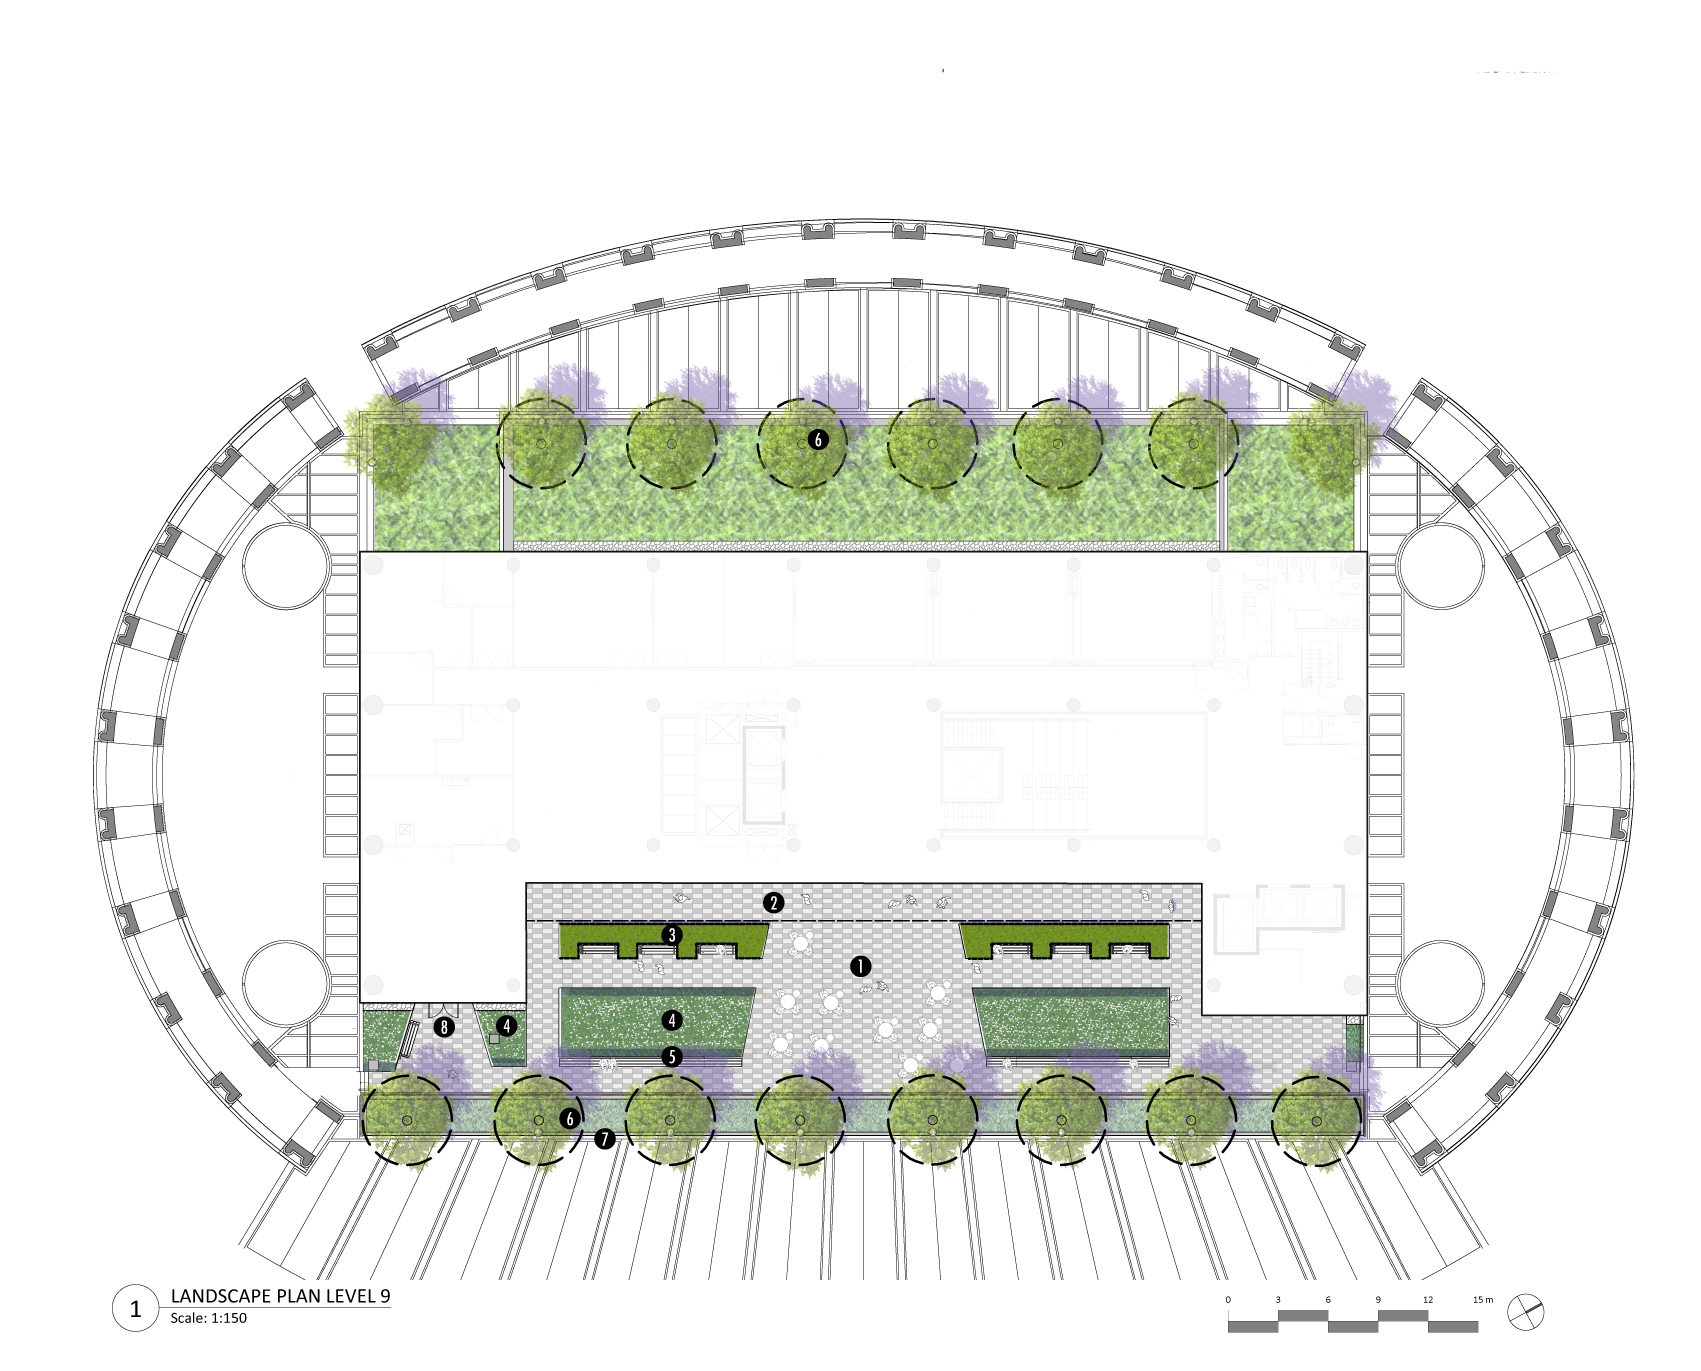 06-465 18-08-31 Library Square Roof Plan